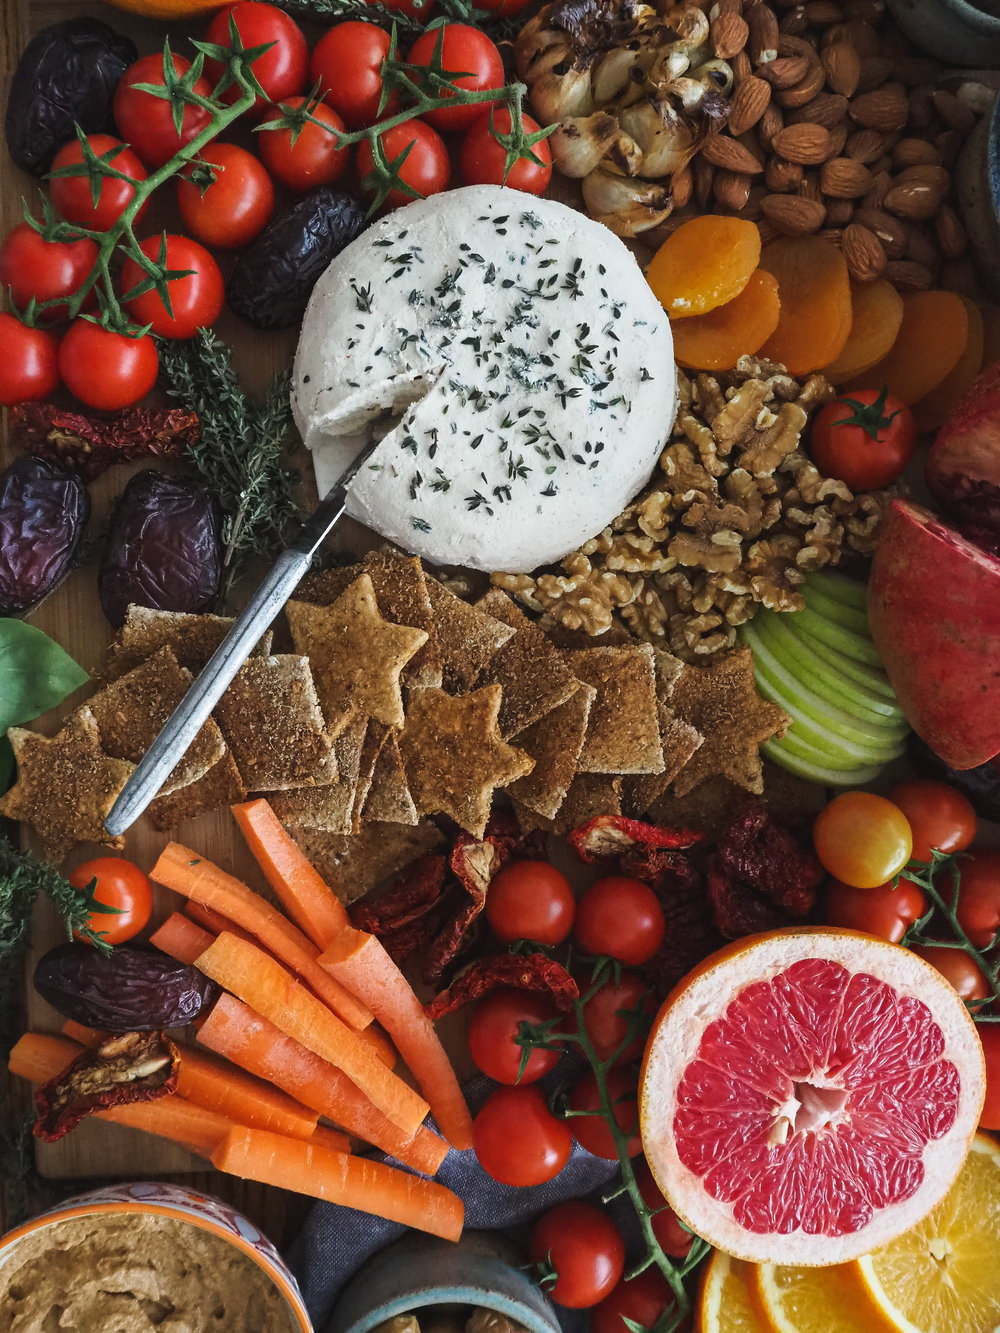 Vegan Appetizer Party Platter / Snack Board Spread   Plant-Based, Homemade  All Rights Reserved © Elly Hollenhorst